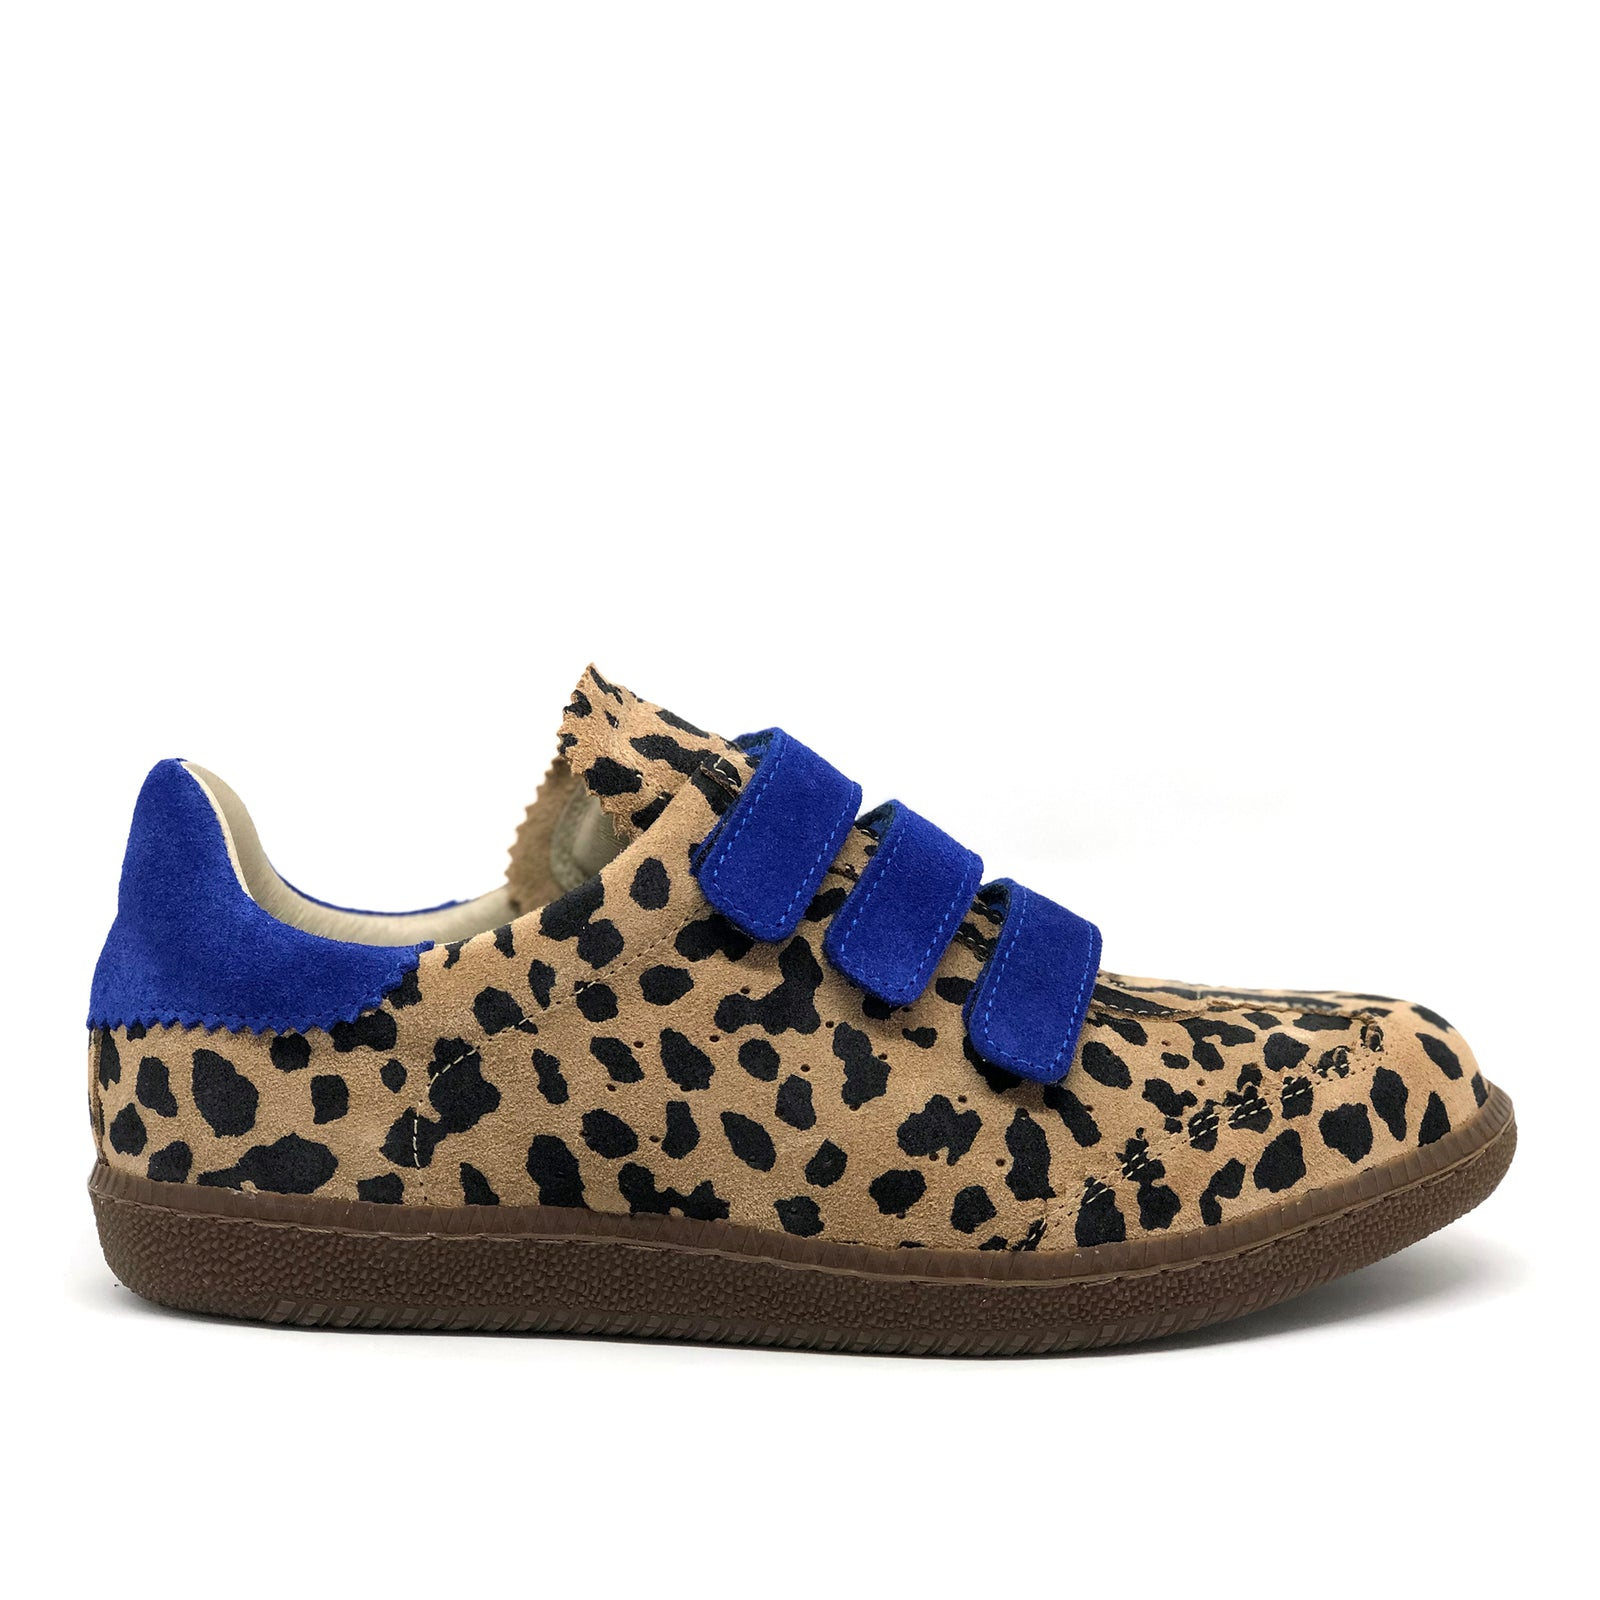 Lush Animal Print + Electric Blue